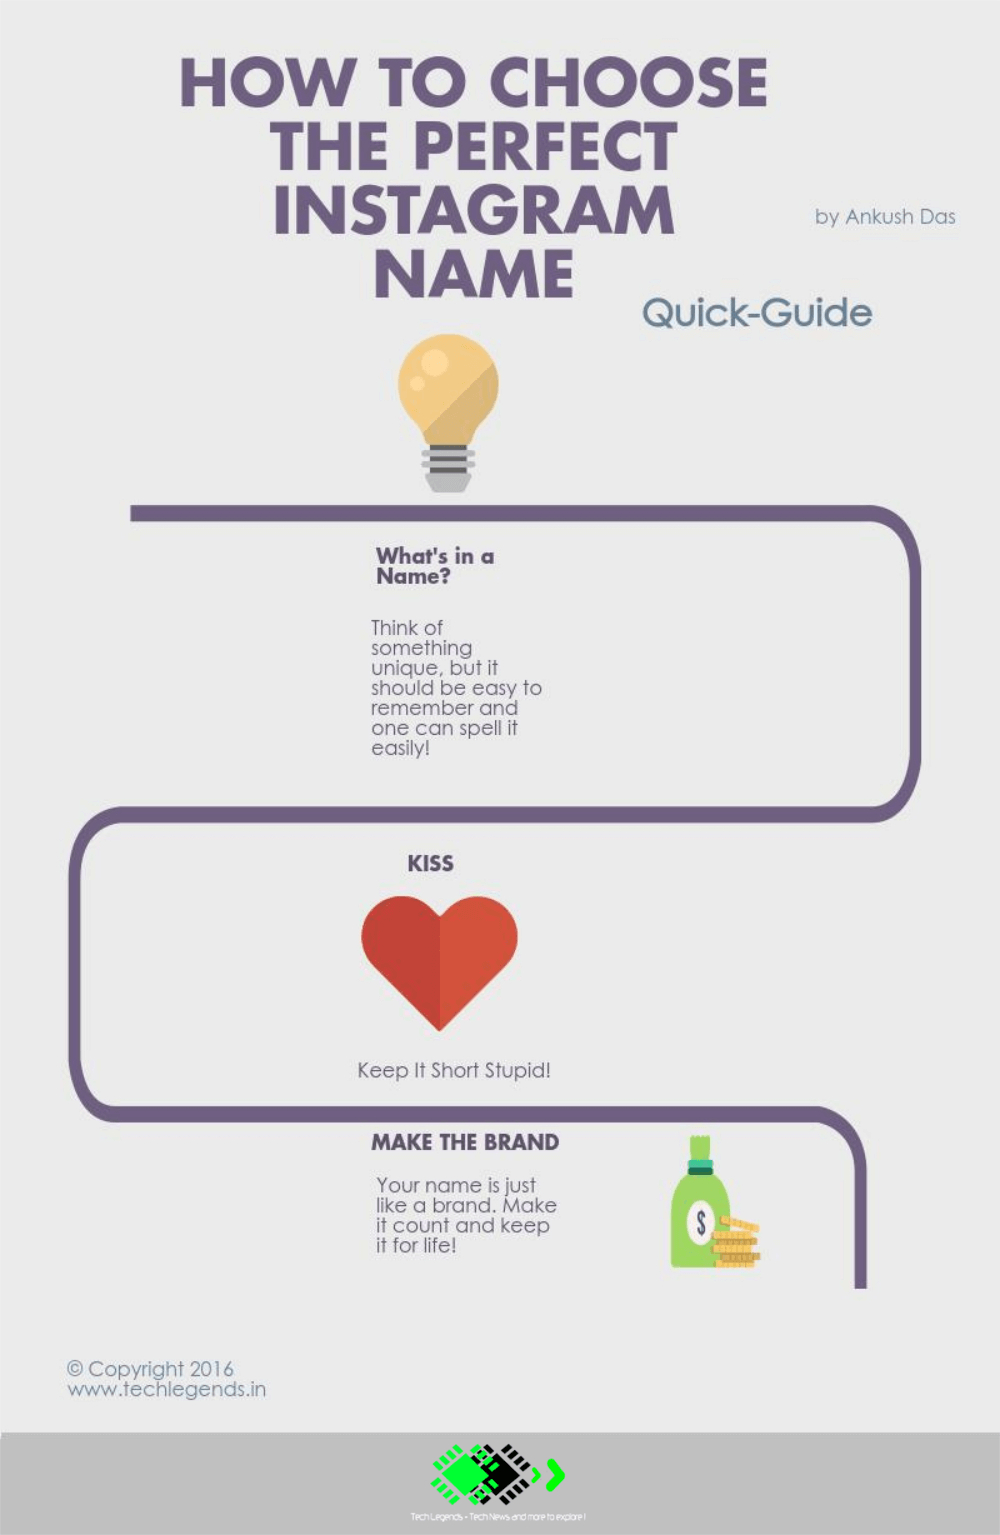 10 Fashionable Instagram Username Ideas With Your Name 160 cool instagram name ideas to easily get a million followers 1 2020